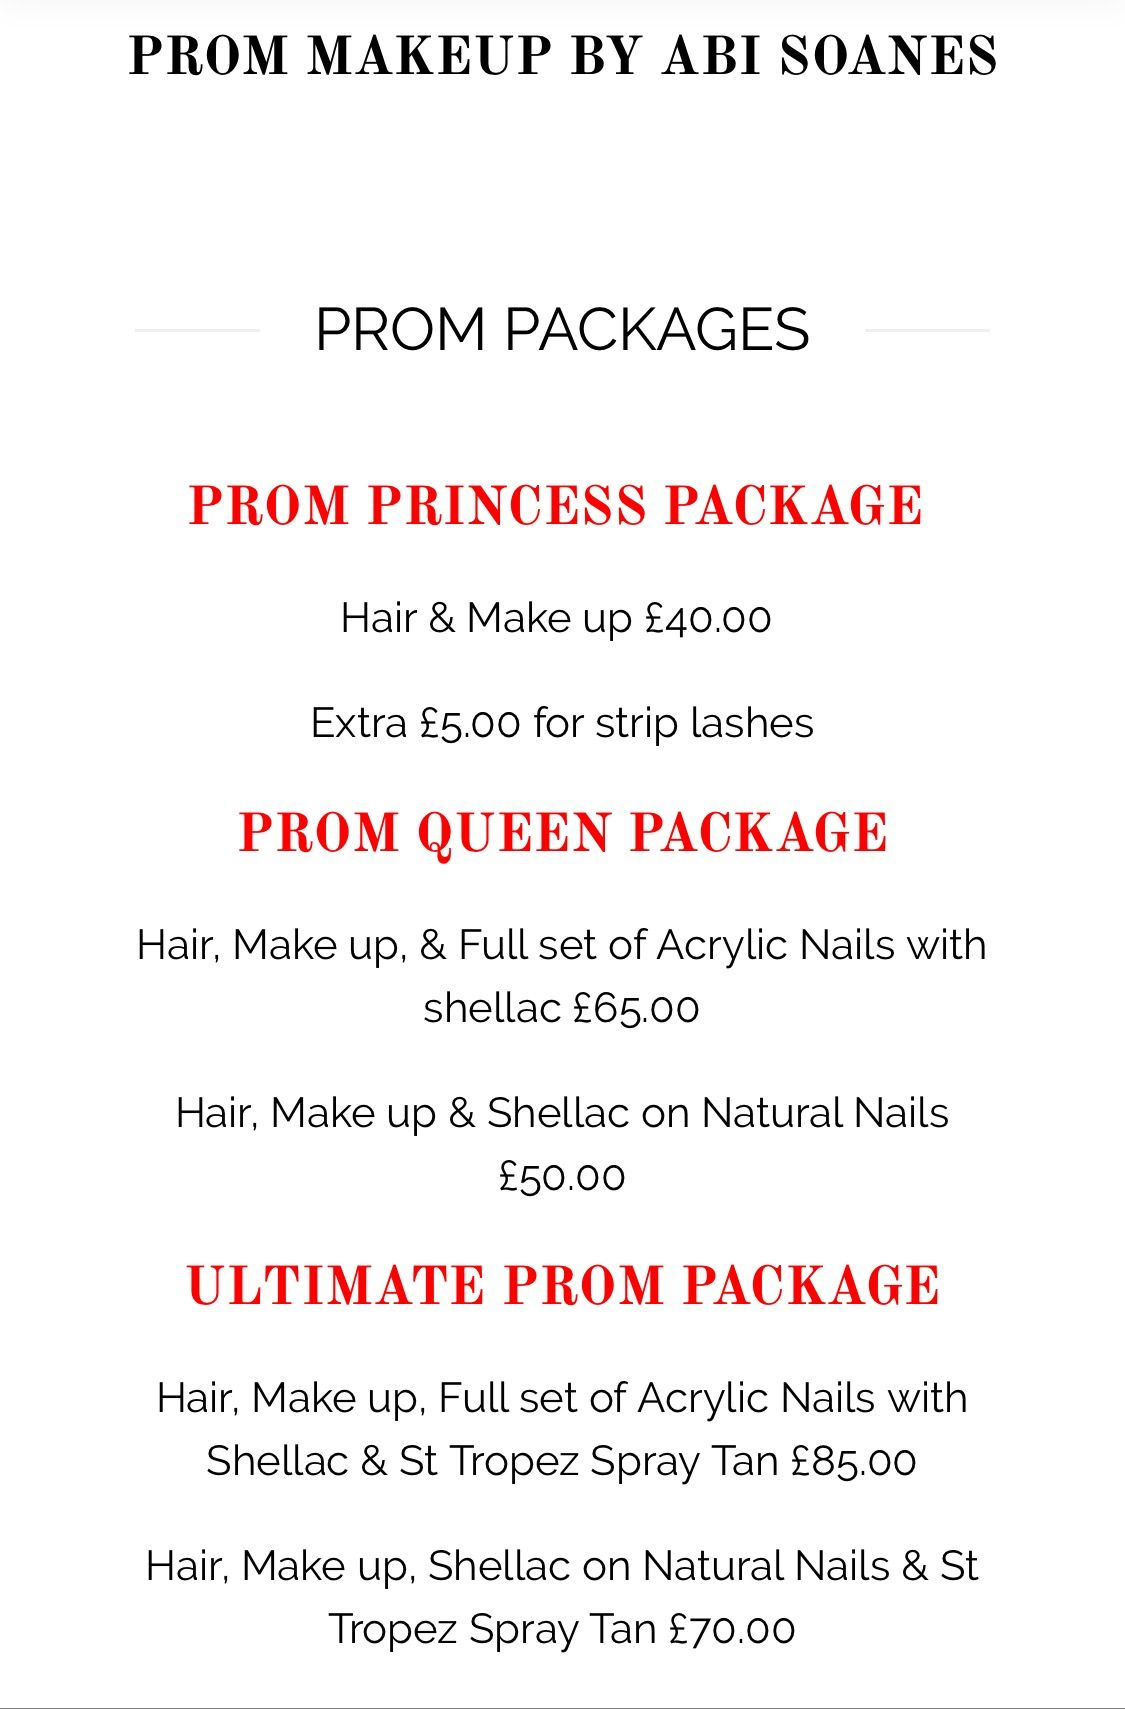 Check Out Our Prom Packages Available To Book Now 50 Deposit Required For All Bookings And Trials Available Upon Re Up Hairstyles Makeup Studio Strip Lashes